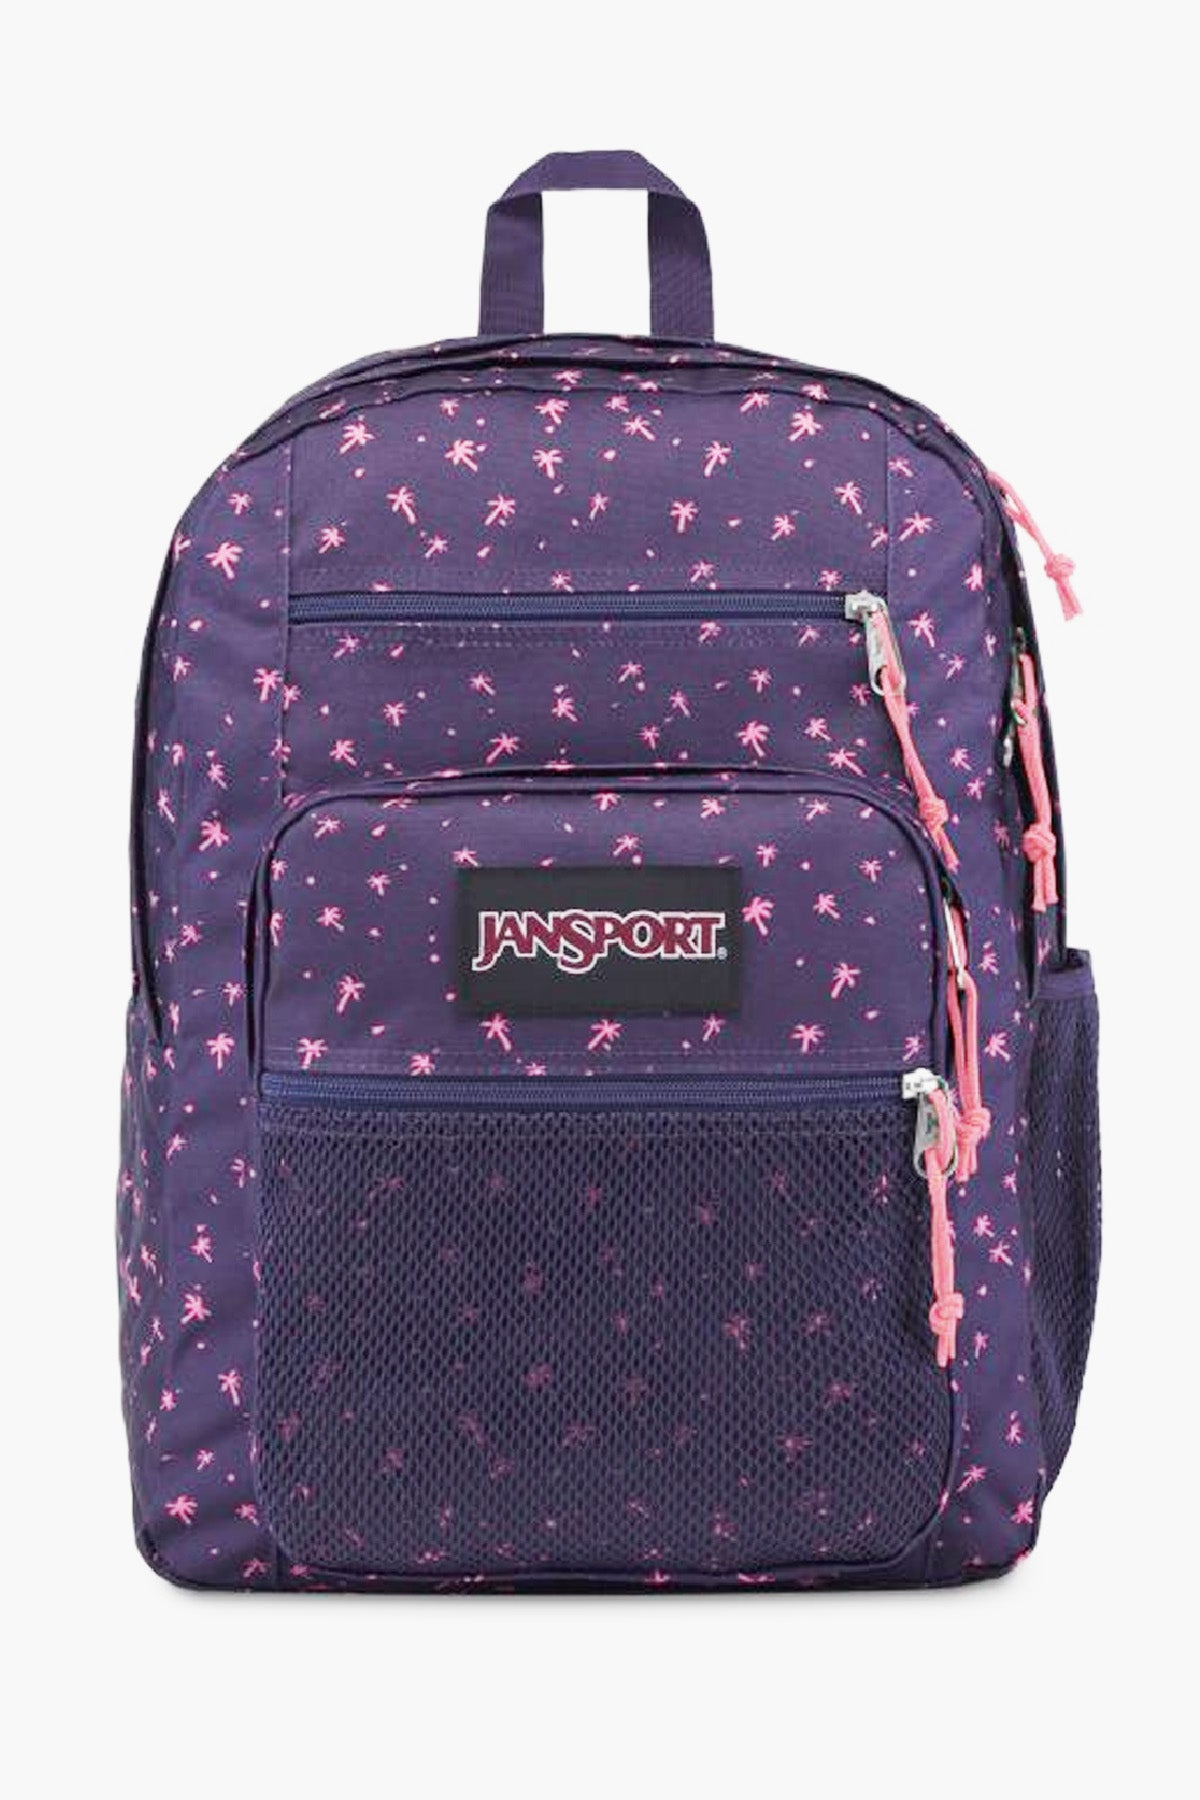 JanSport Big Campus Backpack - Palm Life